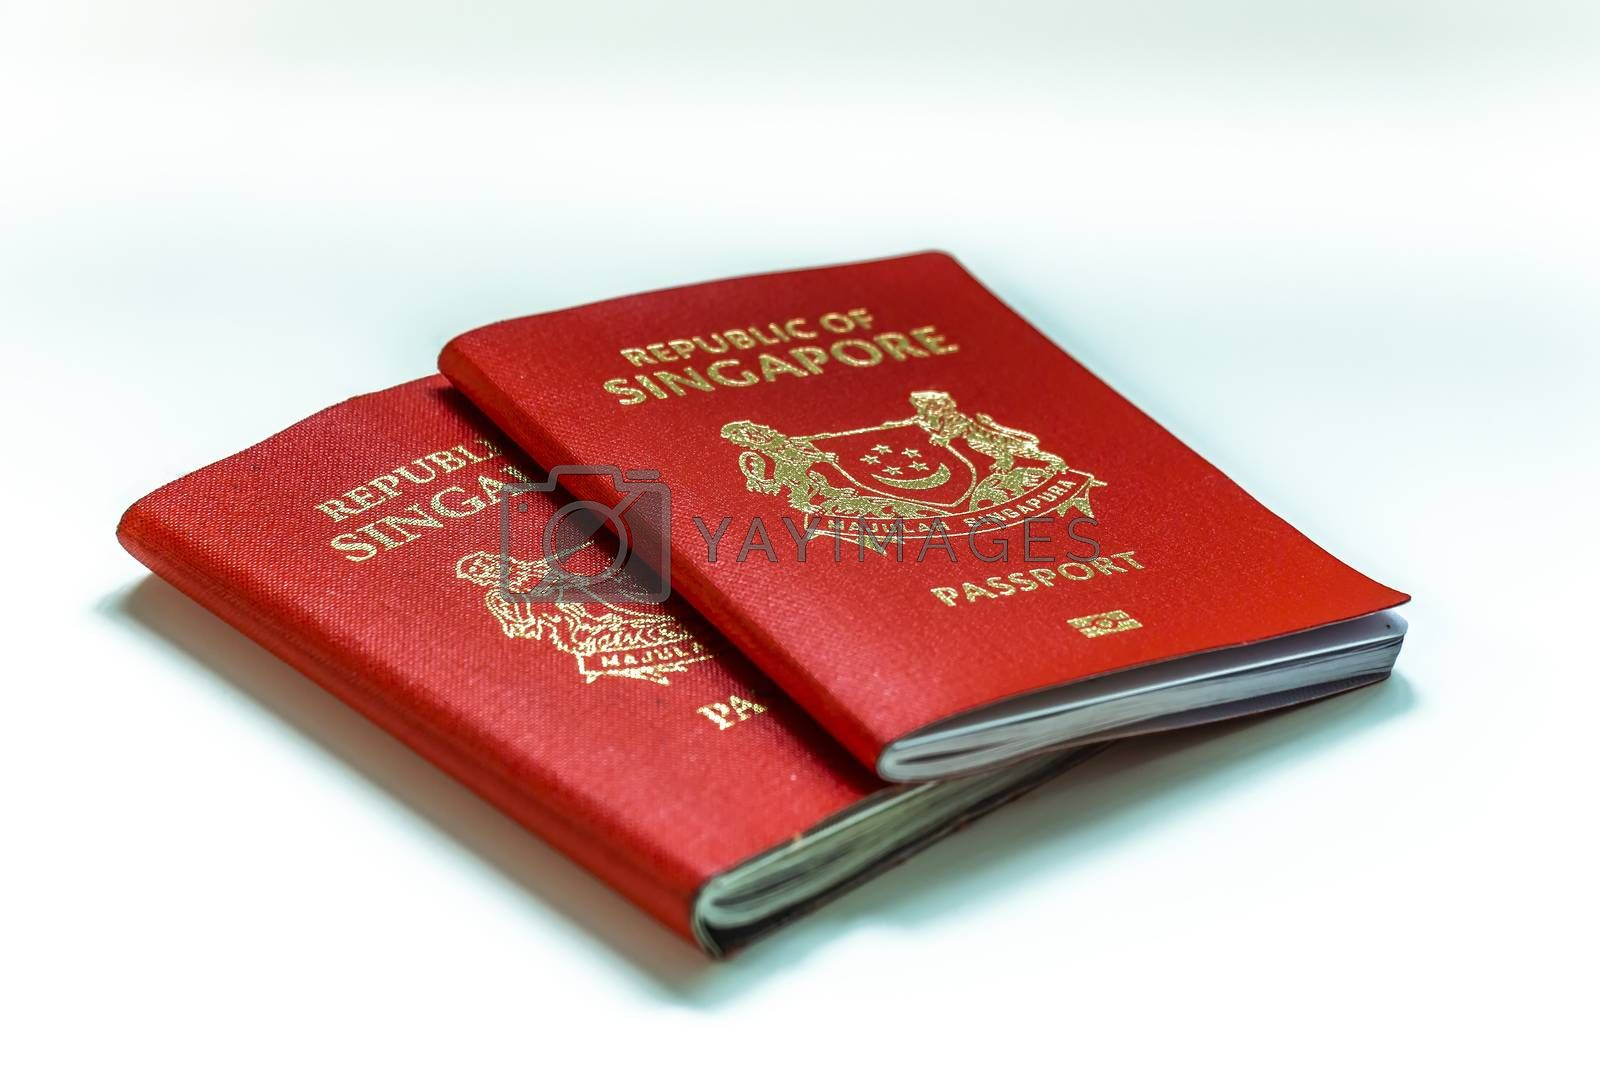 Singapore passport is ranked the most powerful passport in the world with visa-free or visa on arrival access to 189 countries by juliachan